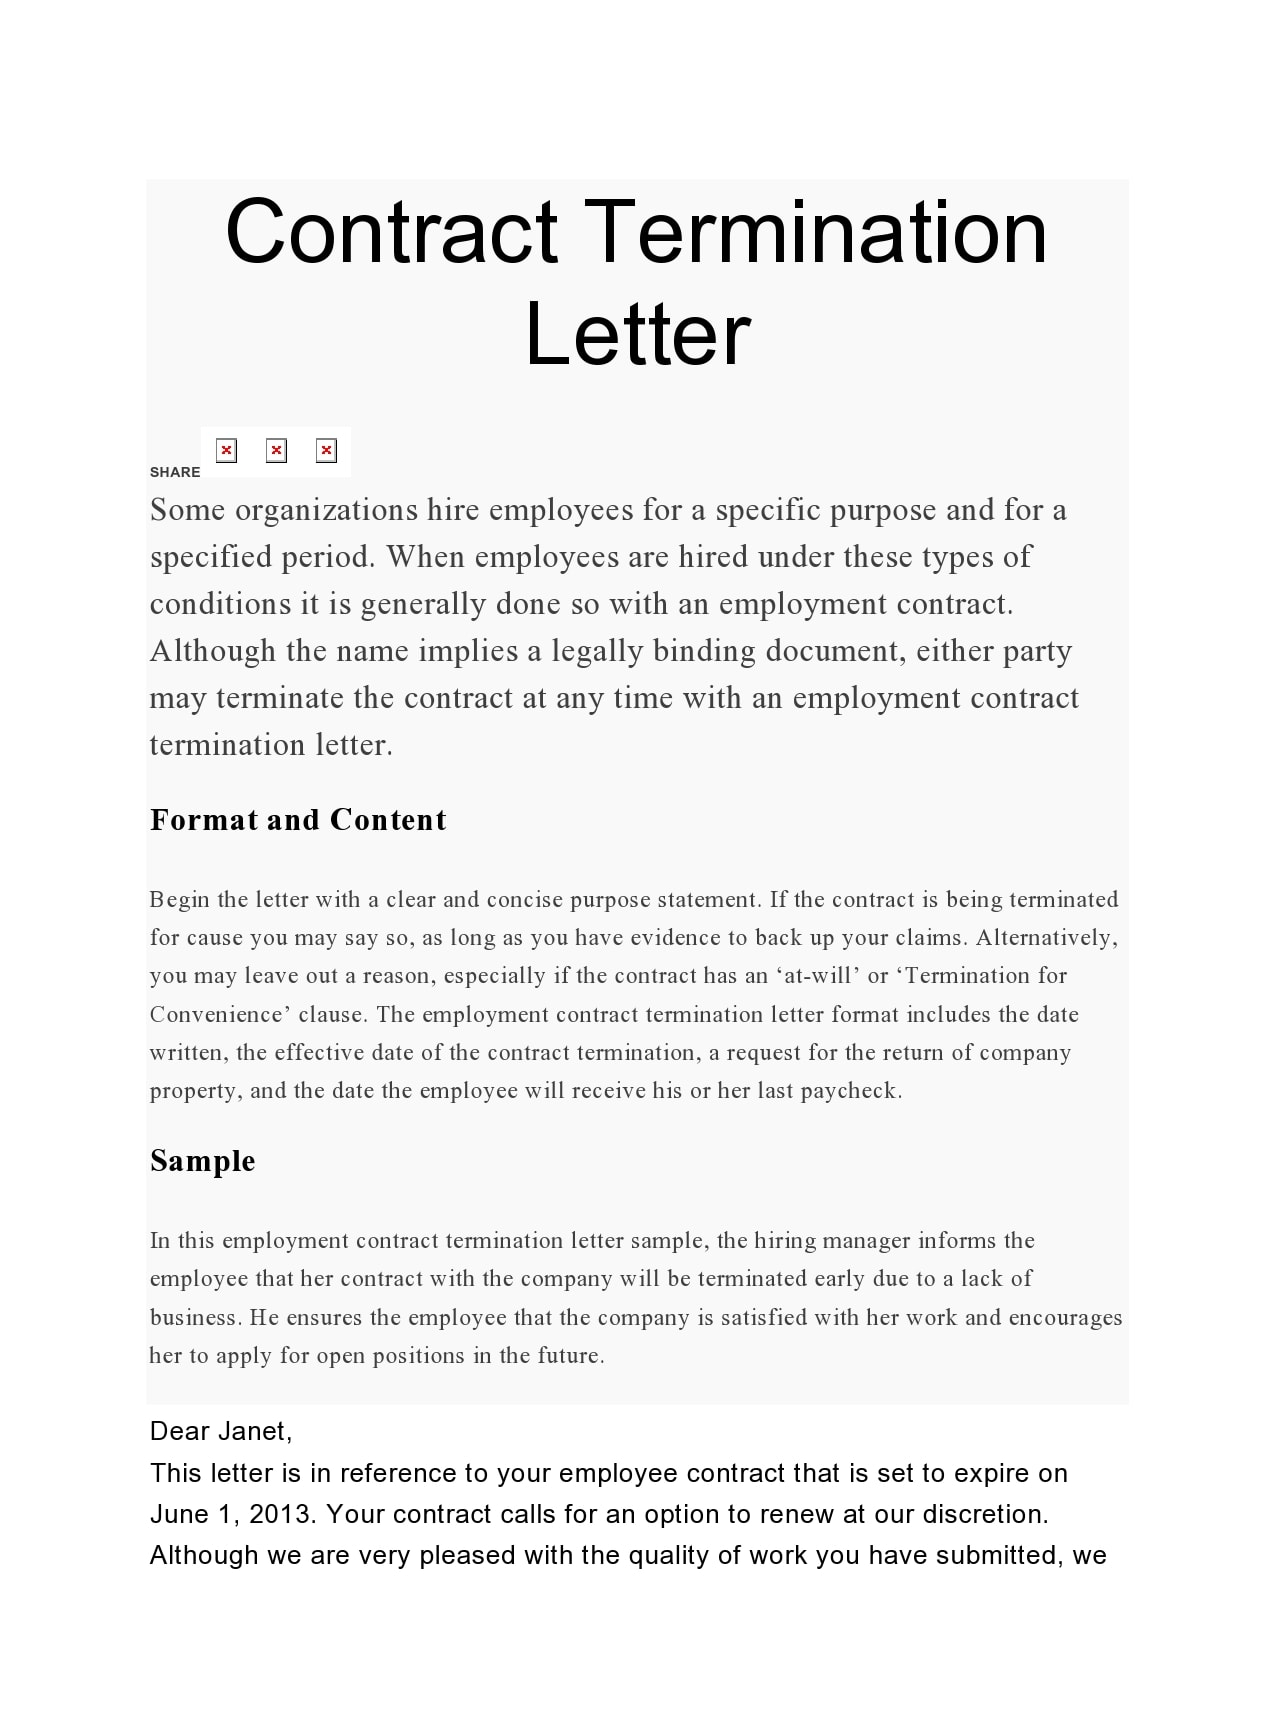 Terminating A Contract Letter from templatearchive.com